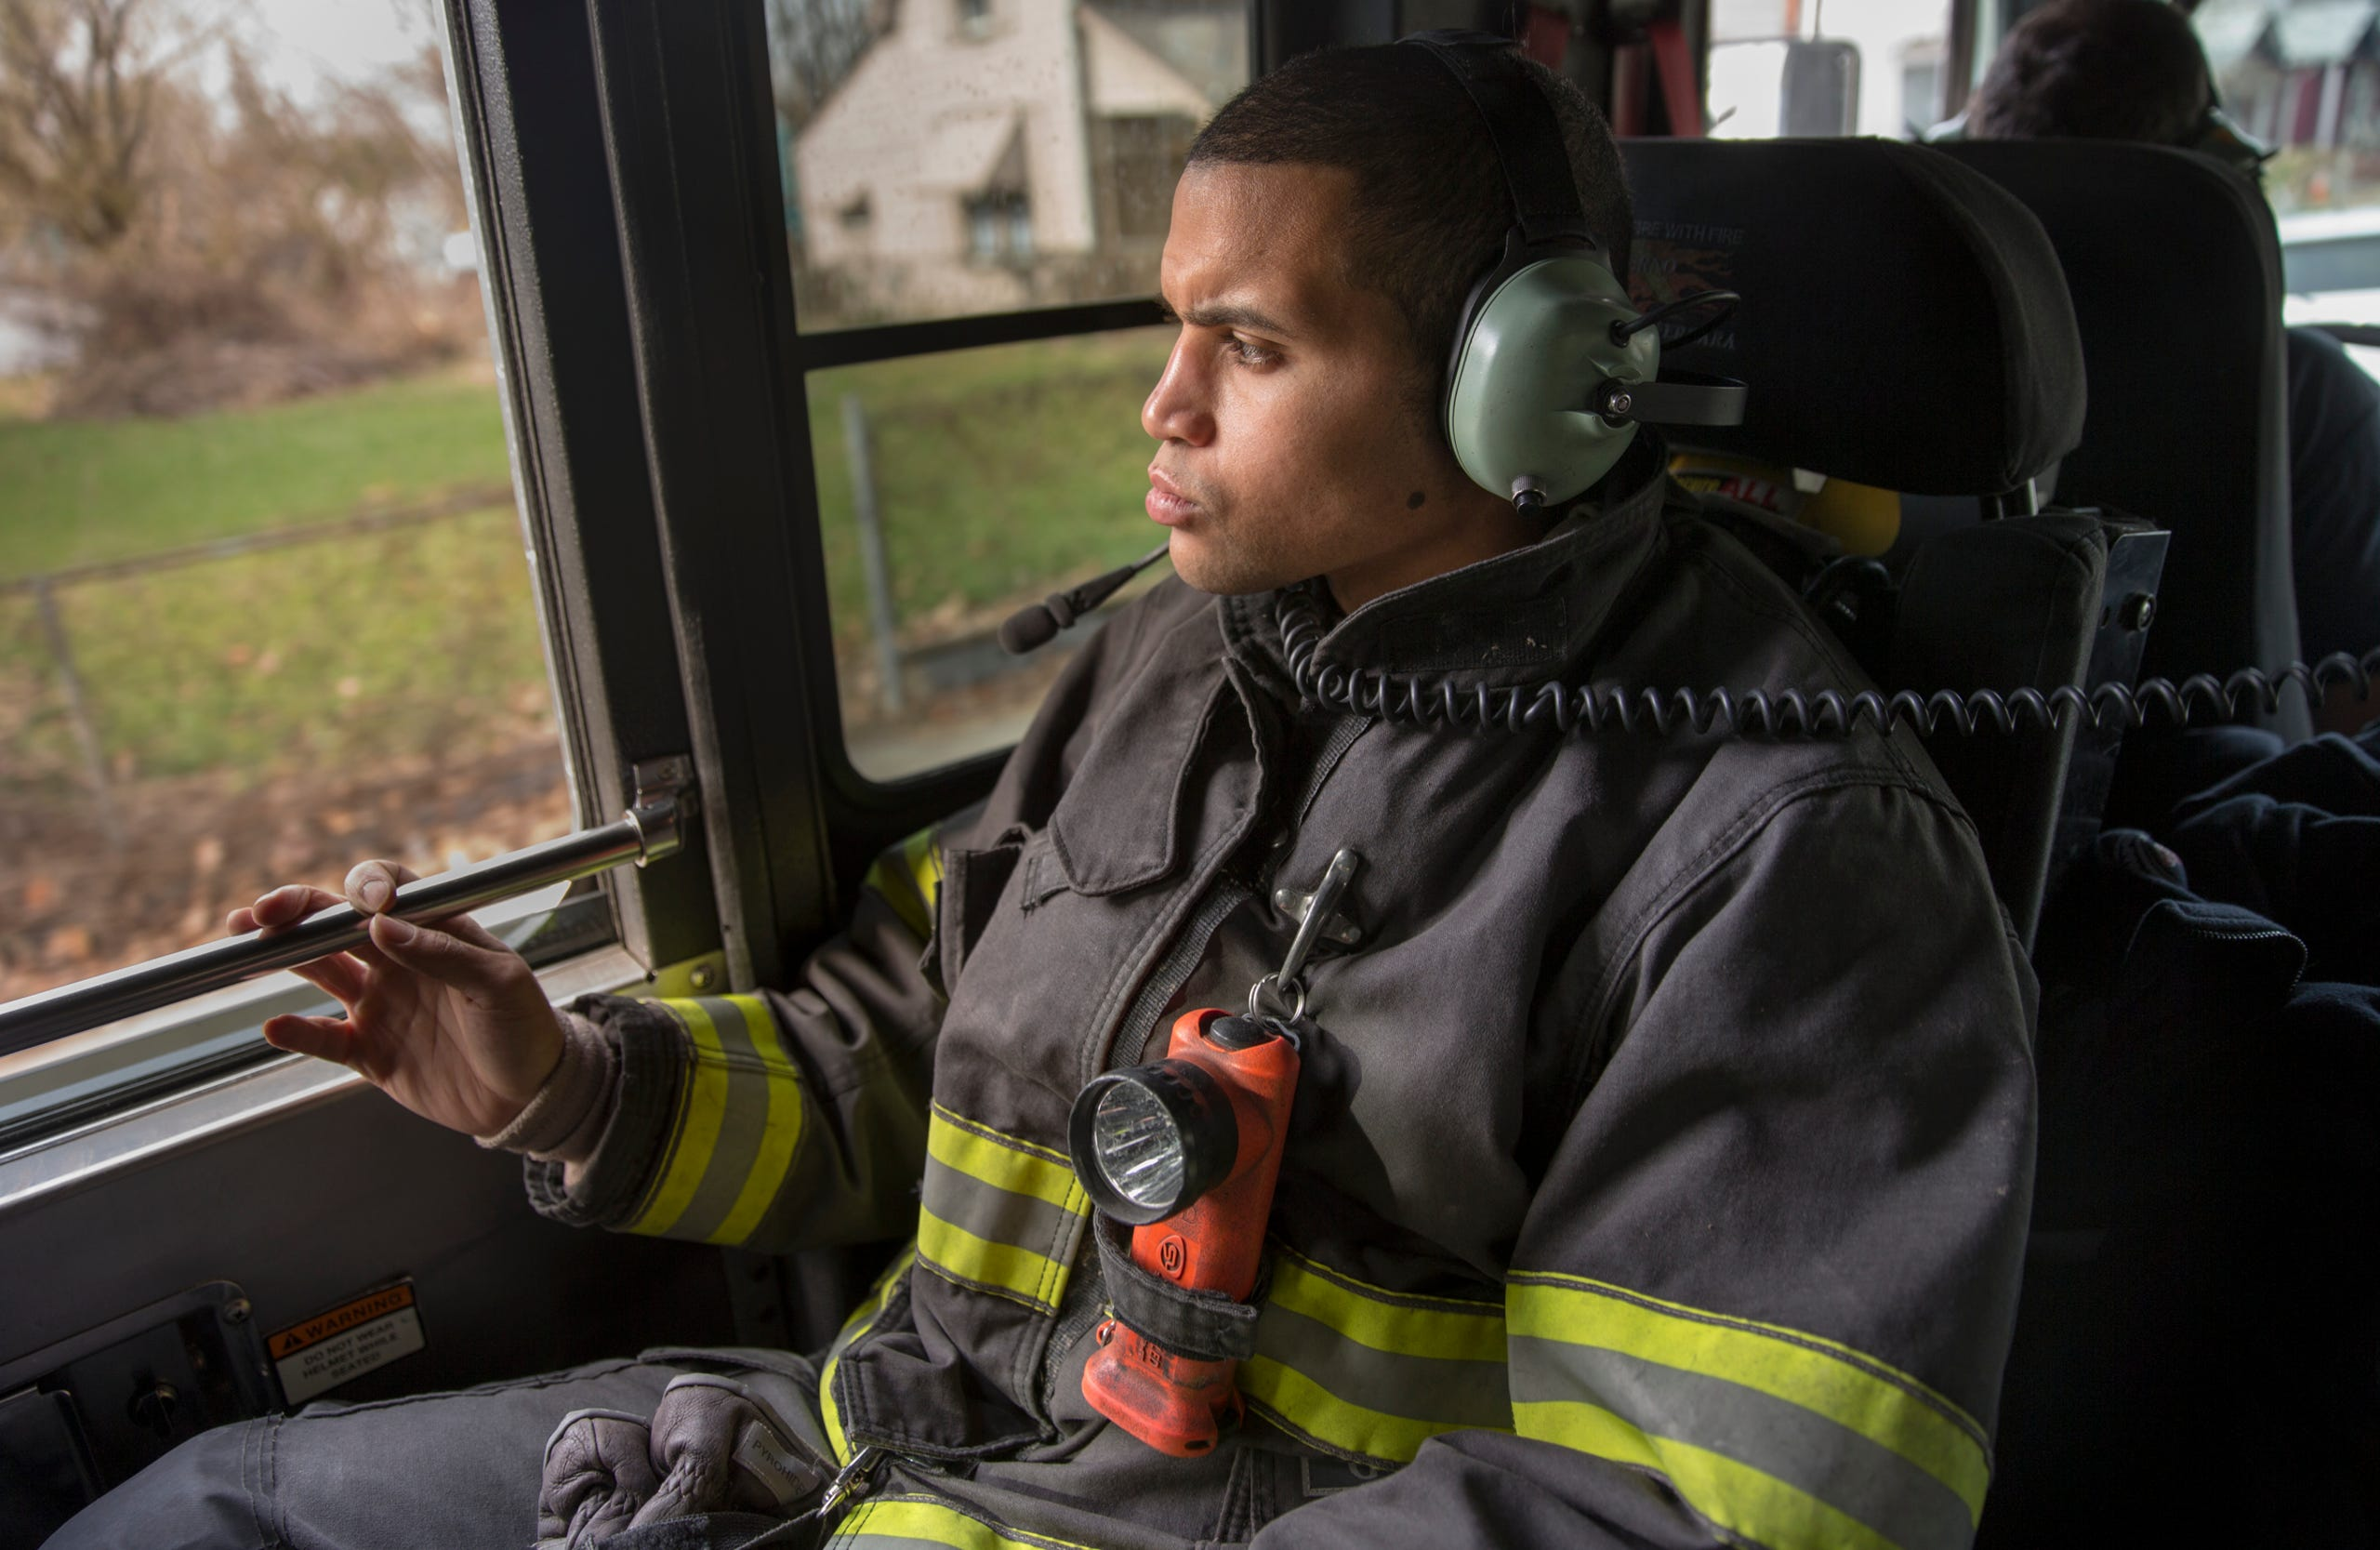 An Indy fire station sees more calls in a week than some see in a year